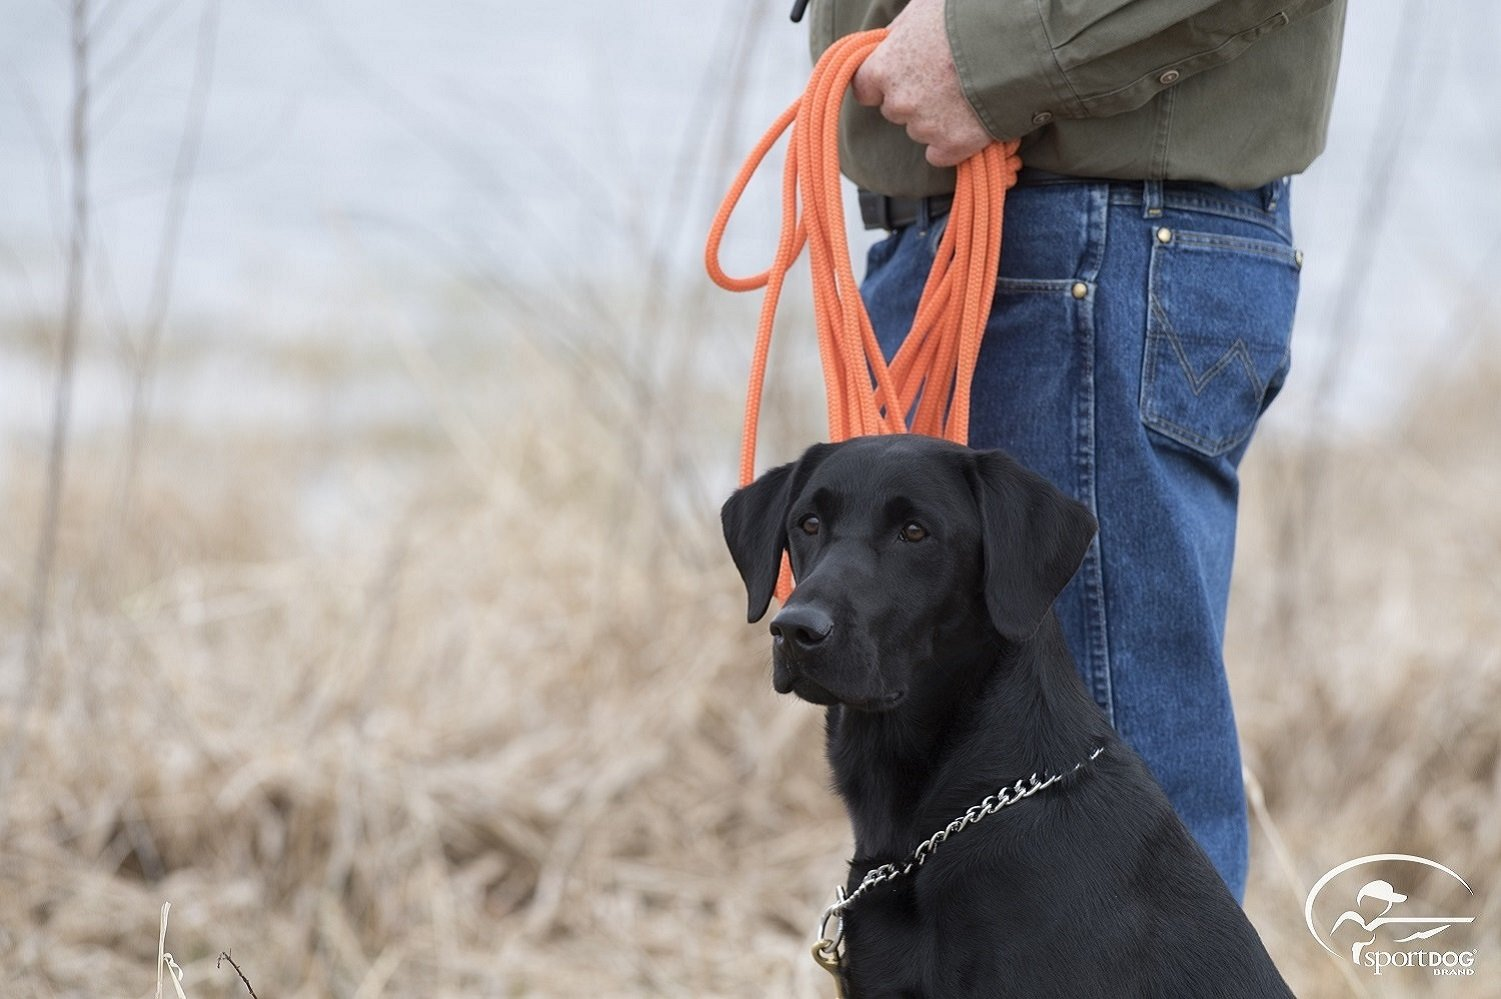 SportDOG Brand Orange Check Cord - 30 Feet Long - Strong but Lightweight Training Tool - Highly Visible and Floats